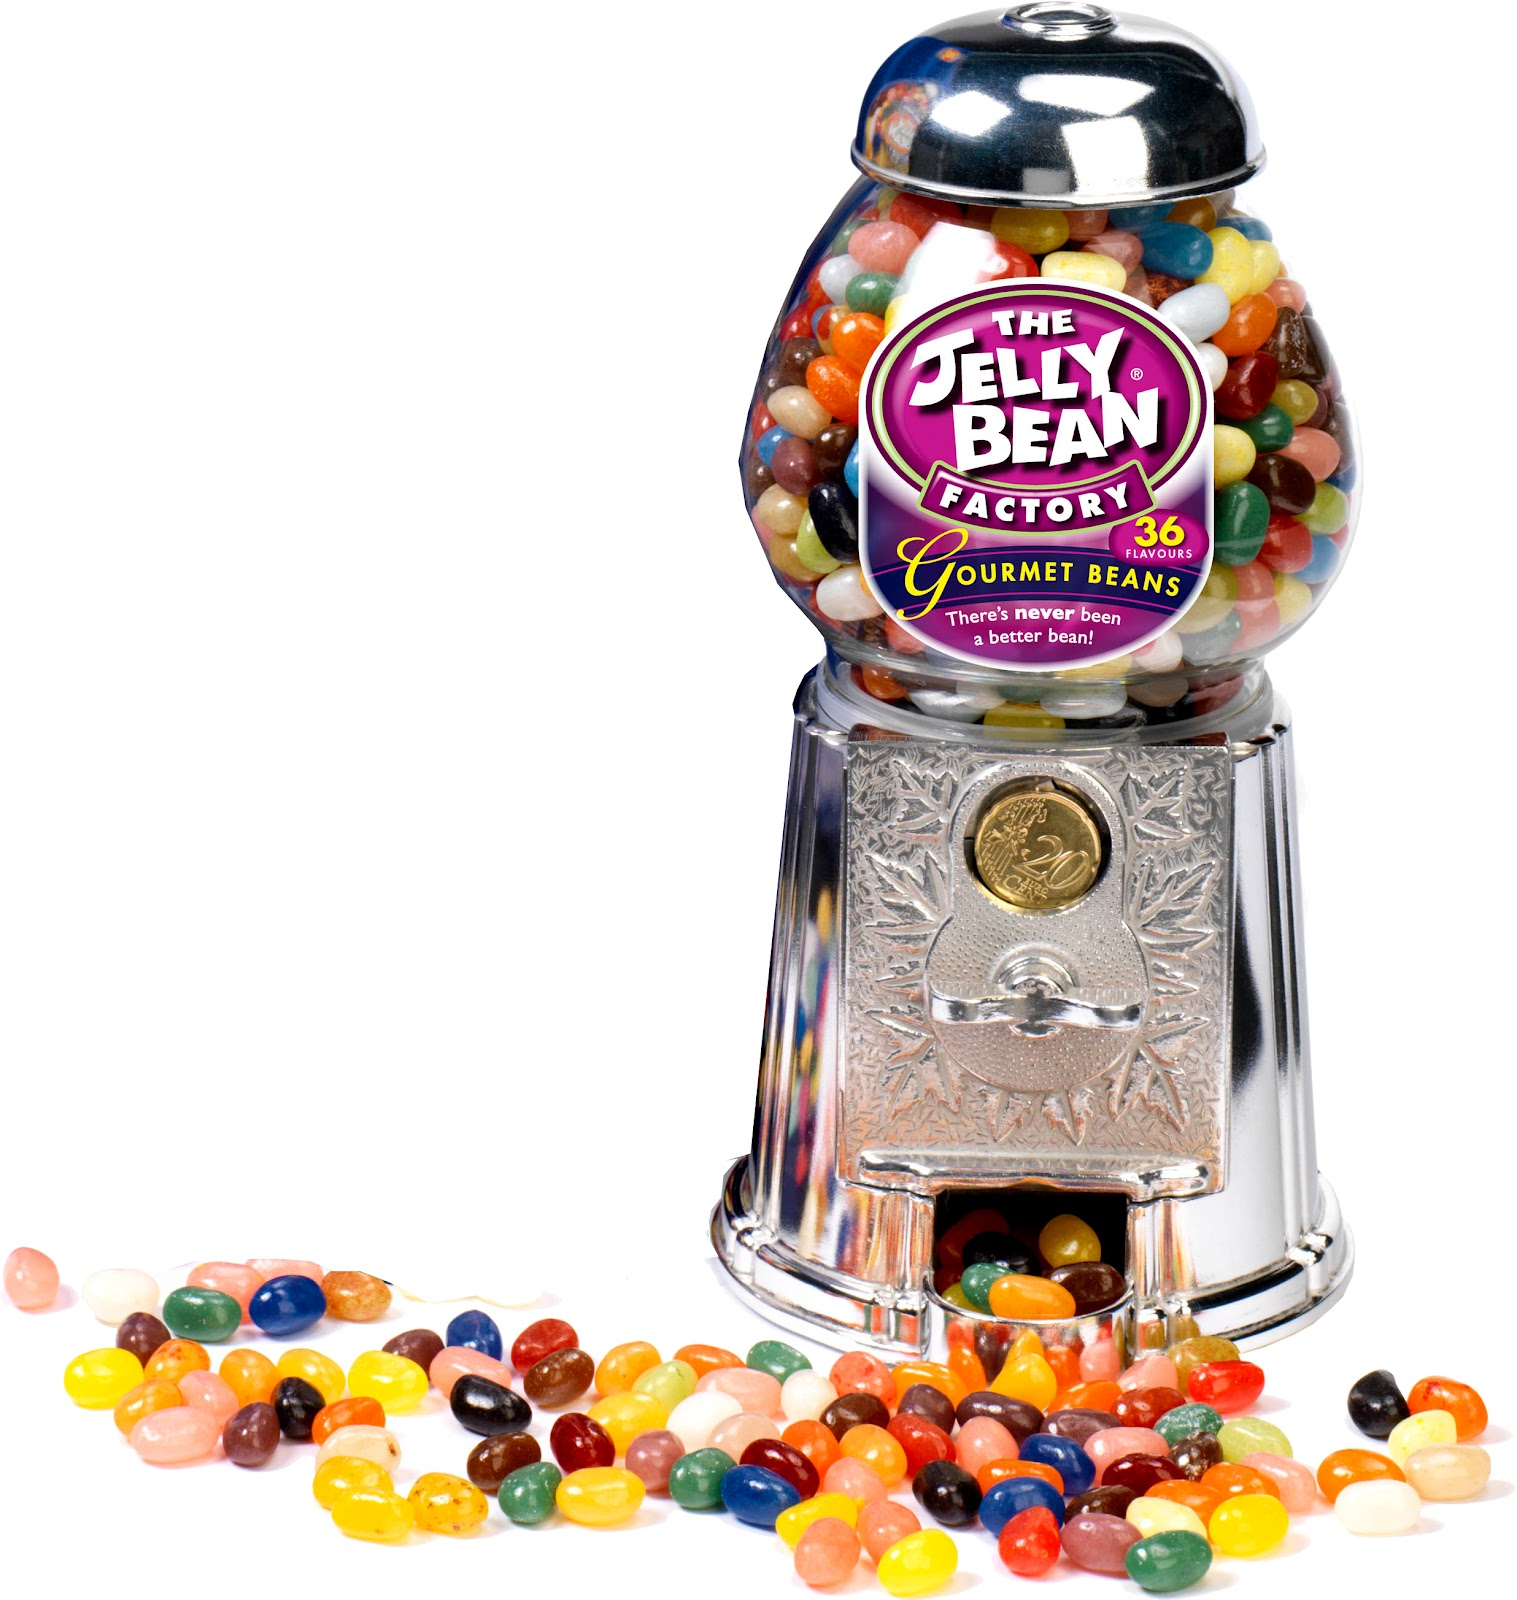 valentines photo box ideas - Jelly Bean Machine with 600g of Gourmet Jelly Beans